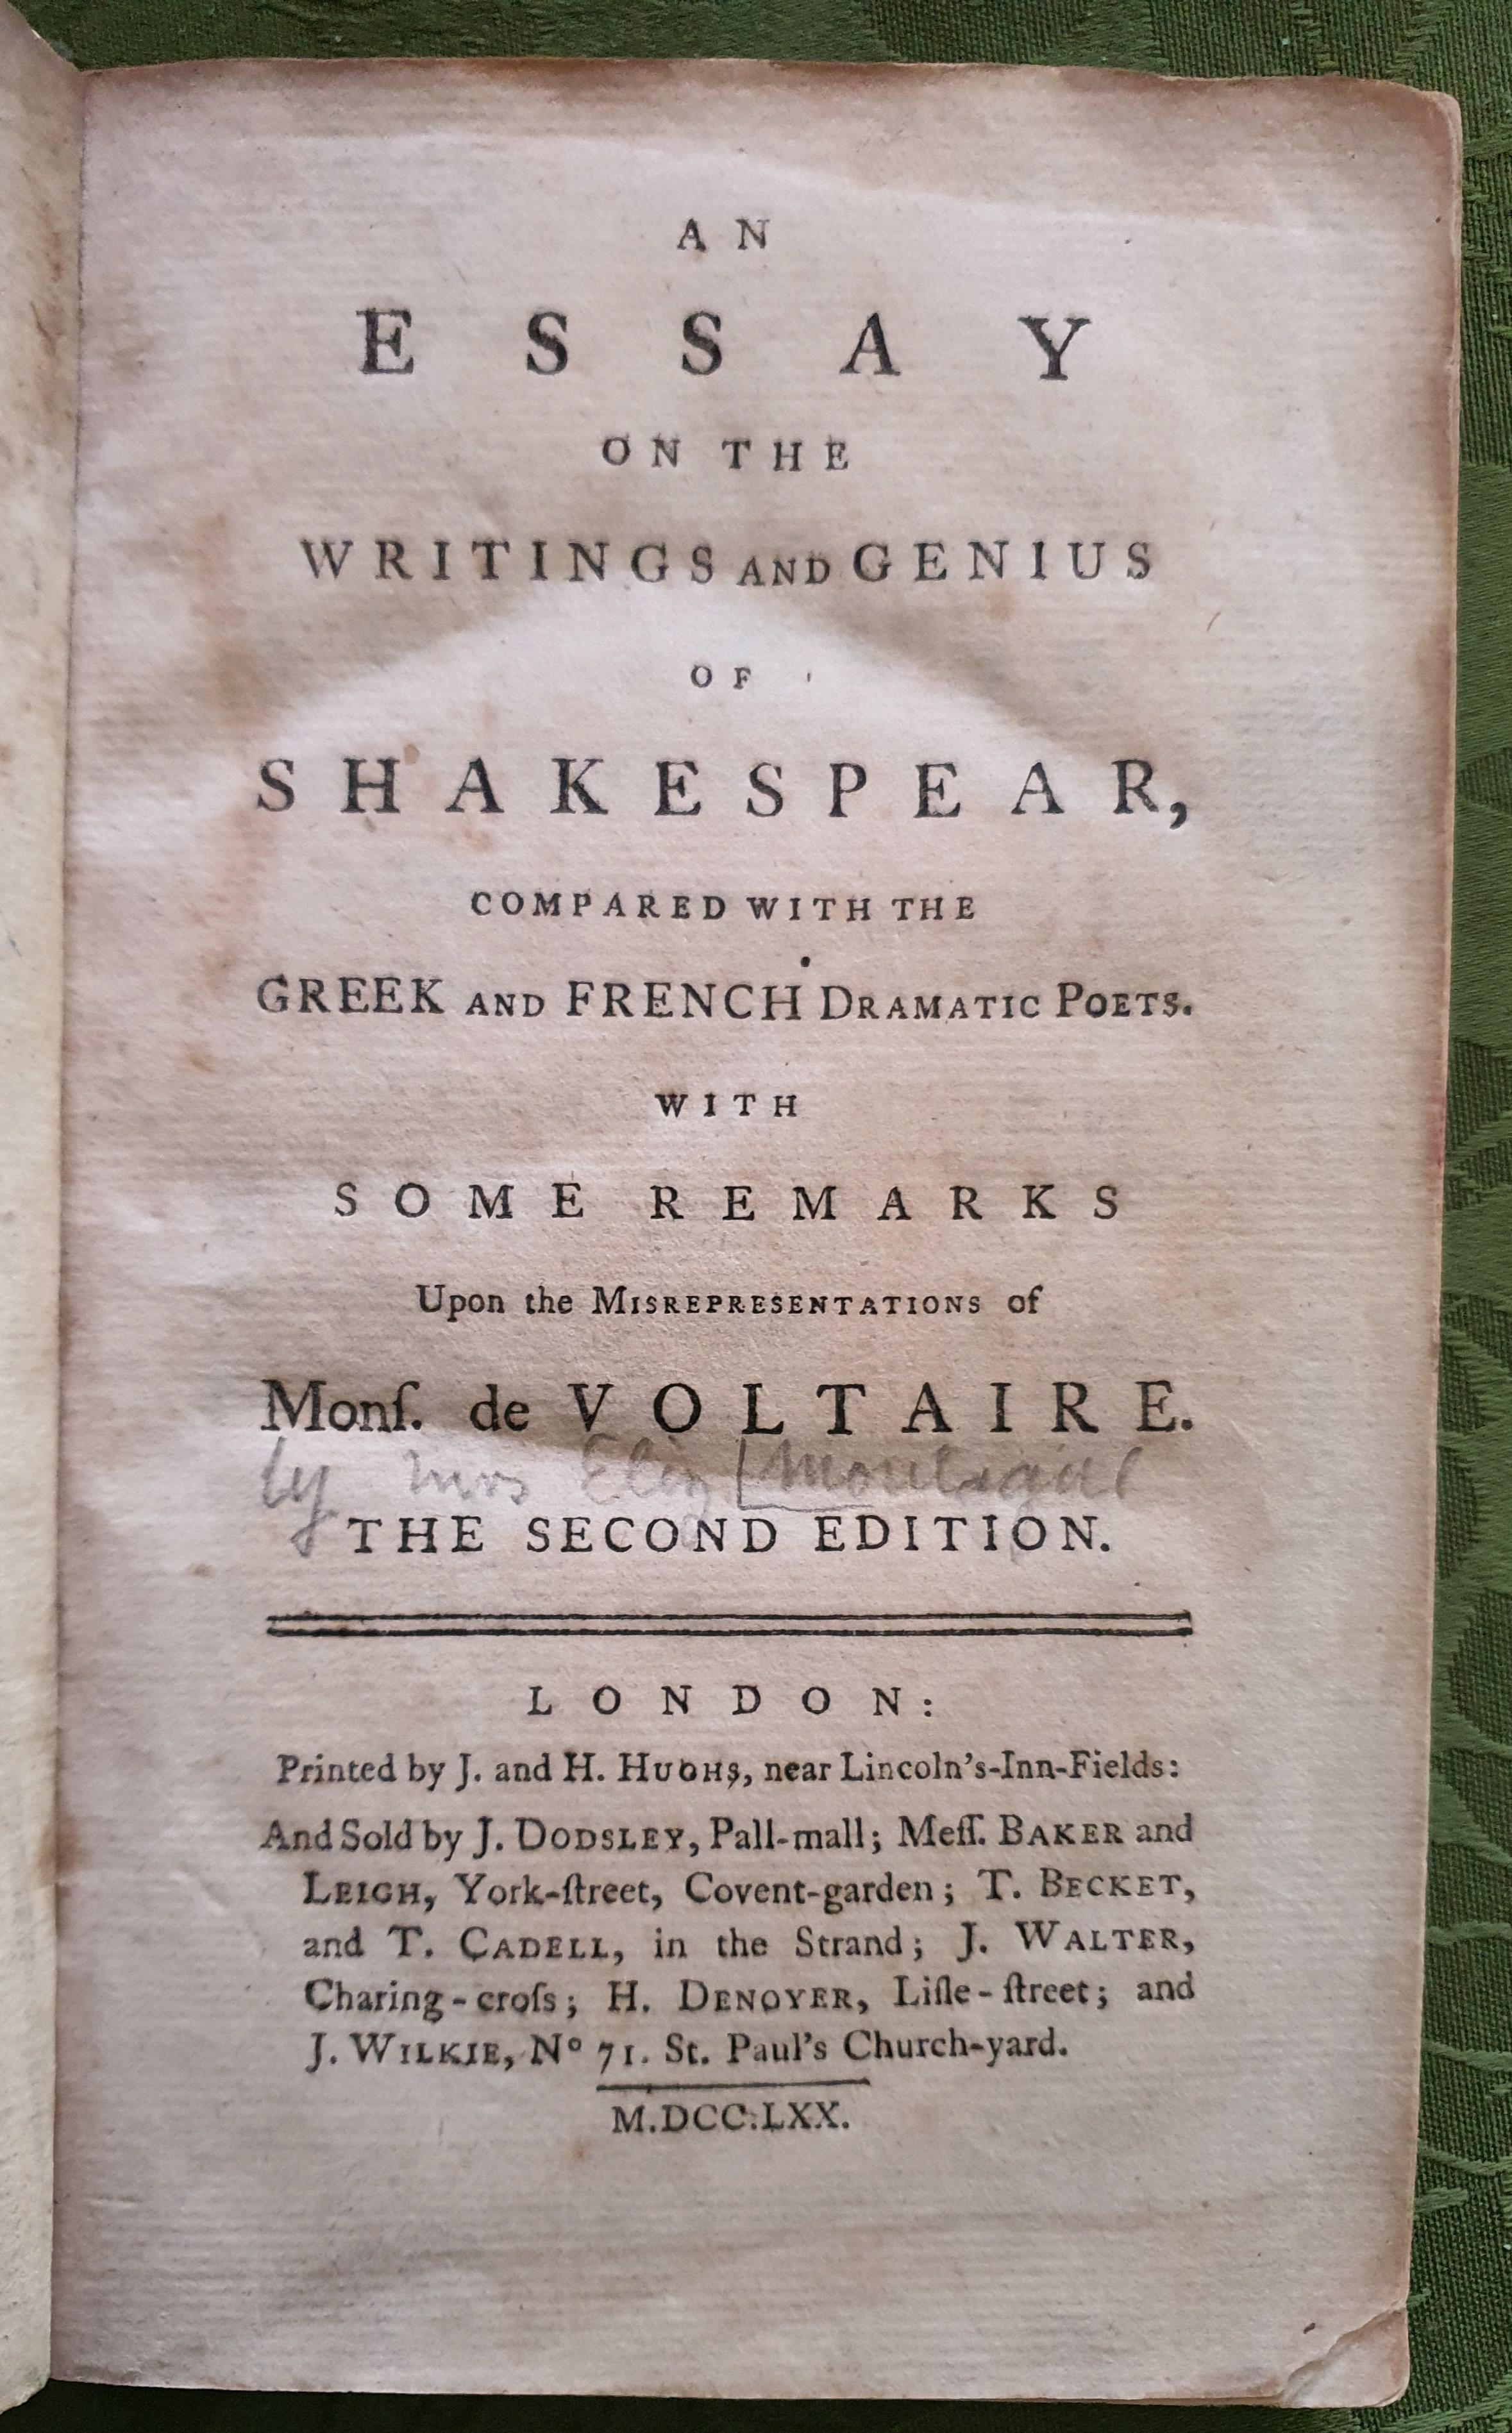 Image for An Essay on the Writings and Genius of Shakespear, Compared with the Greek and French Dramatic Poets. with Some Remarks Upon the Misrepresentations of Mons. de Voltaire. The Second Edition.